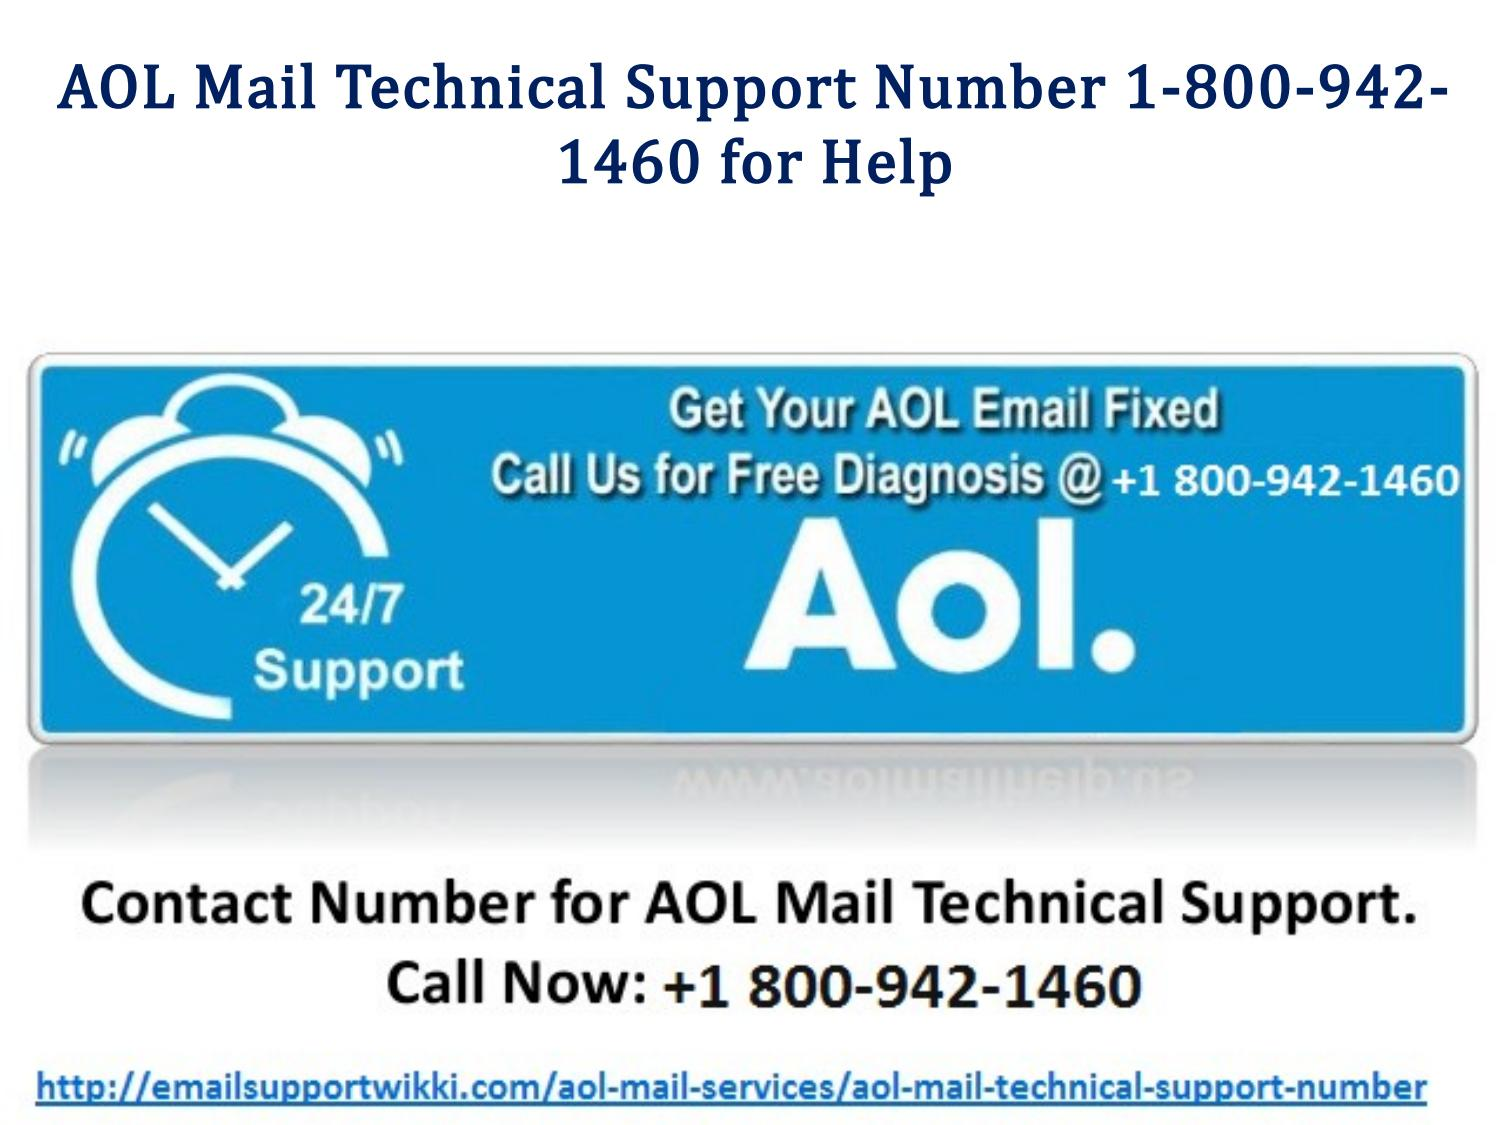 aol mail technical support number 1-800-942-1460 for help by email